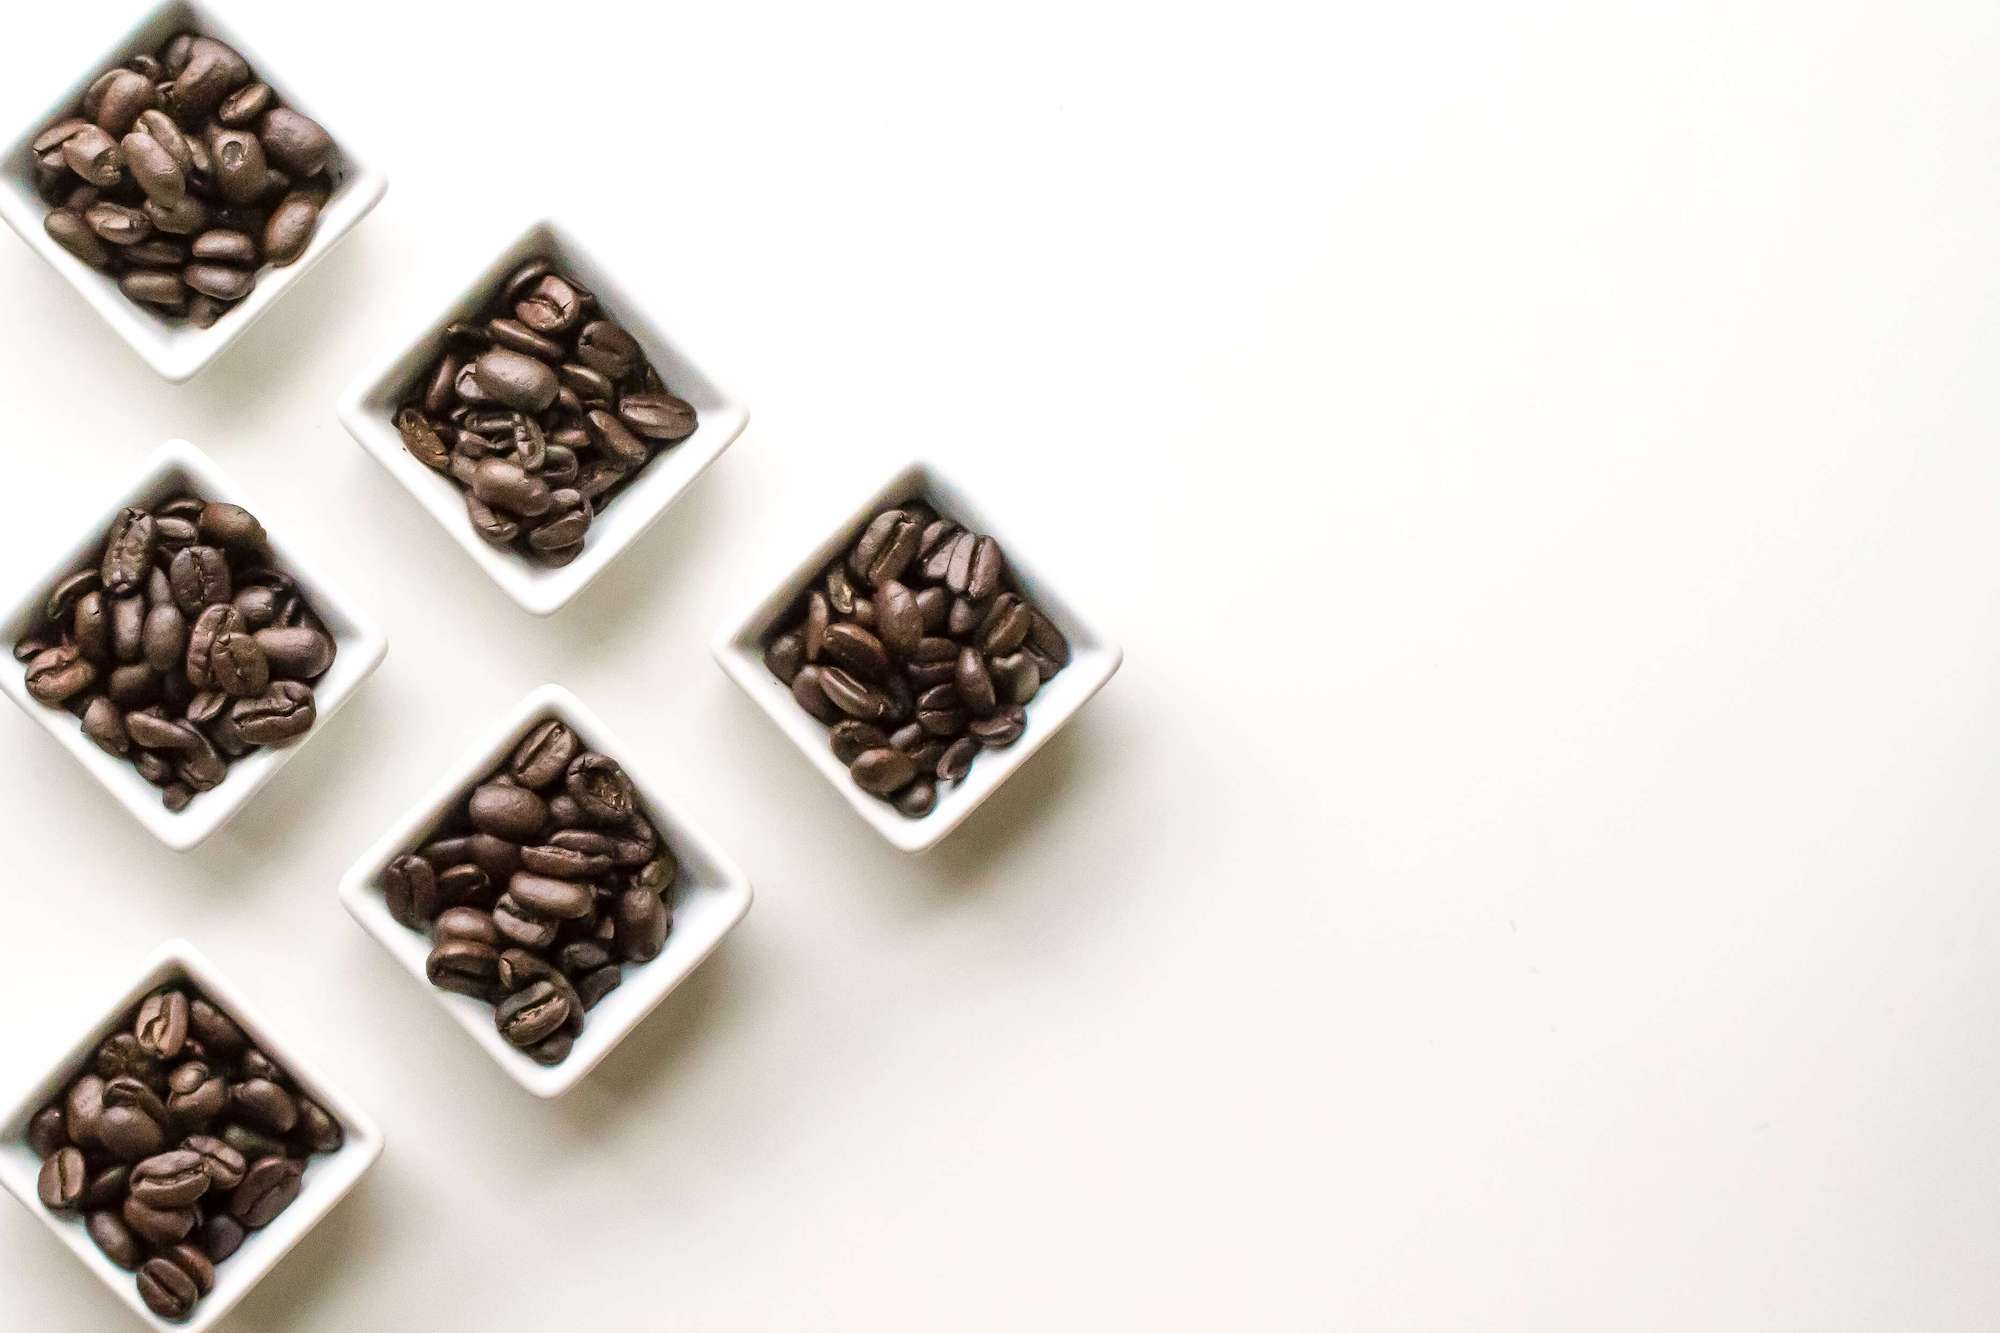 A triangular arrangement of small piles of coffee beans